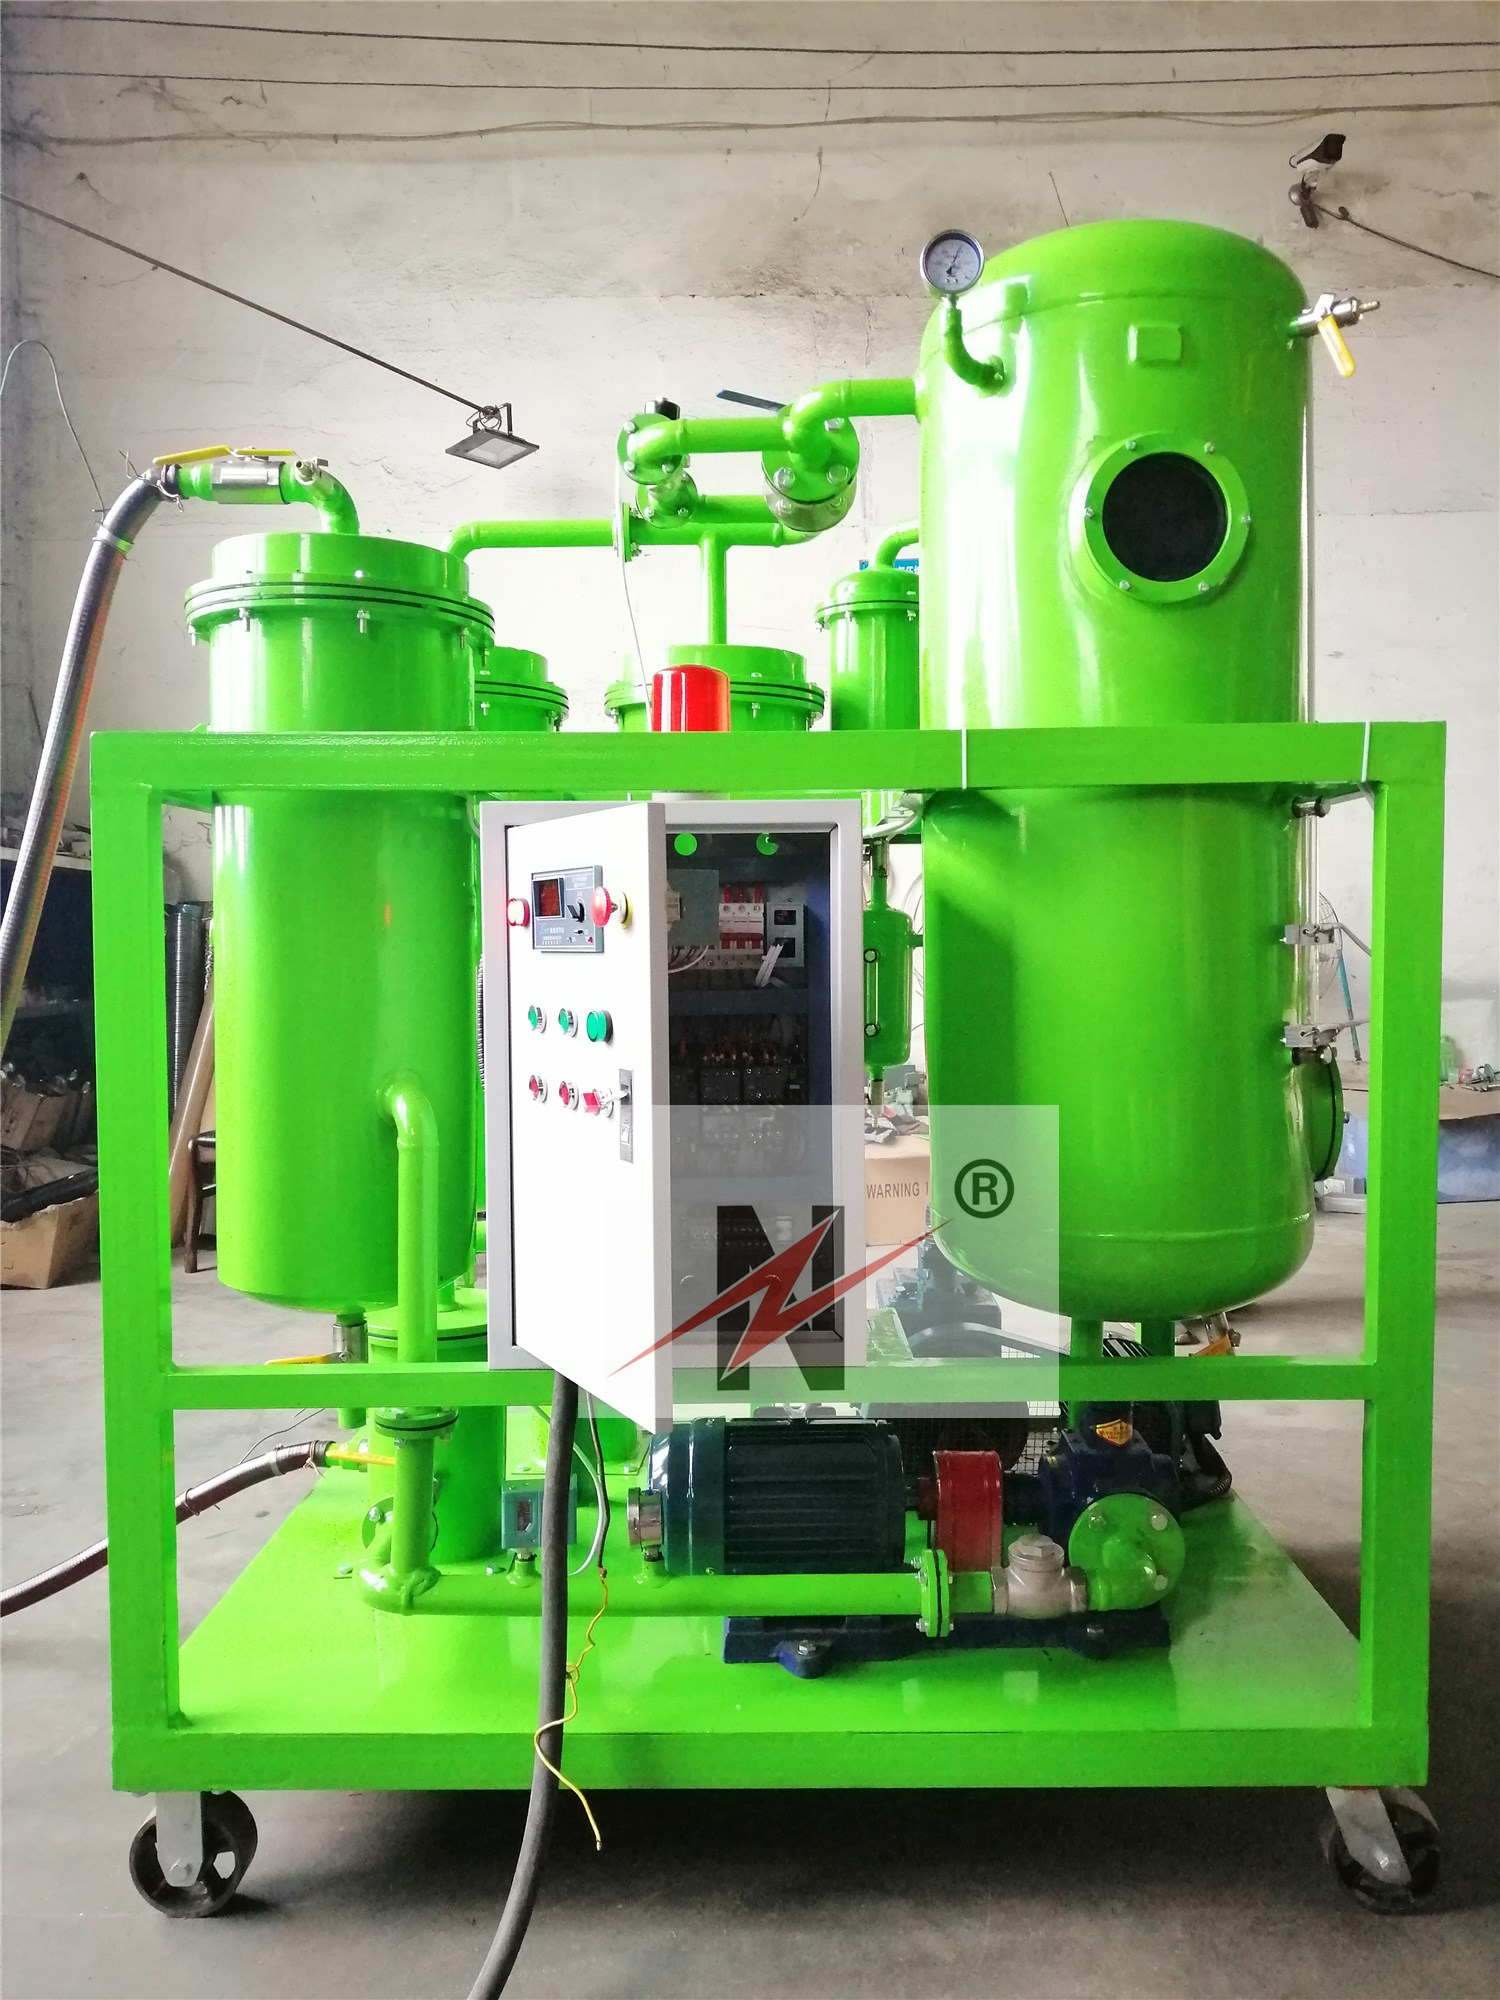 Customized 20GPM turbine oil purifier get ready to ship